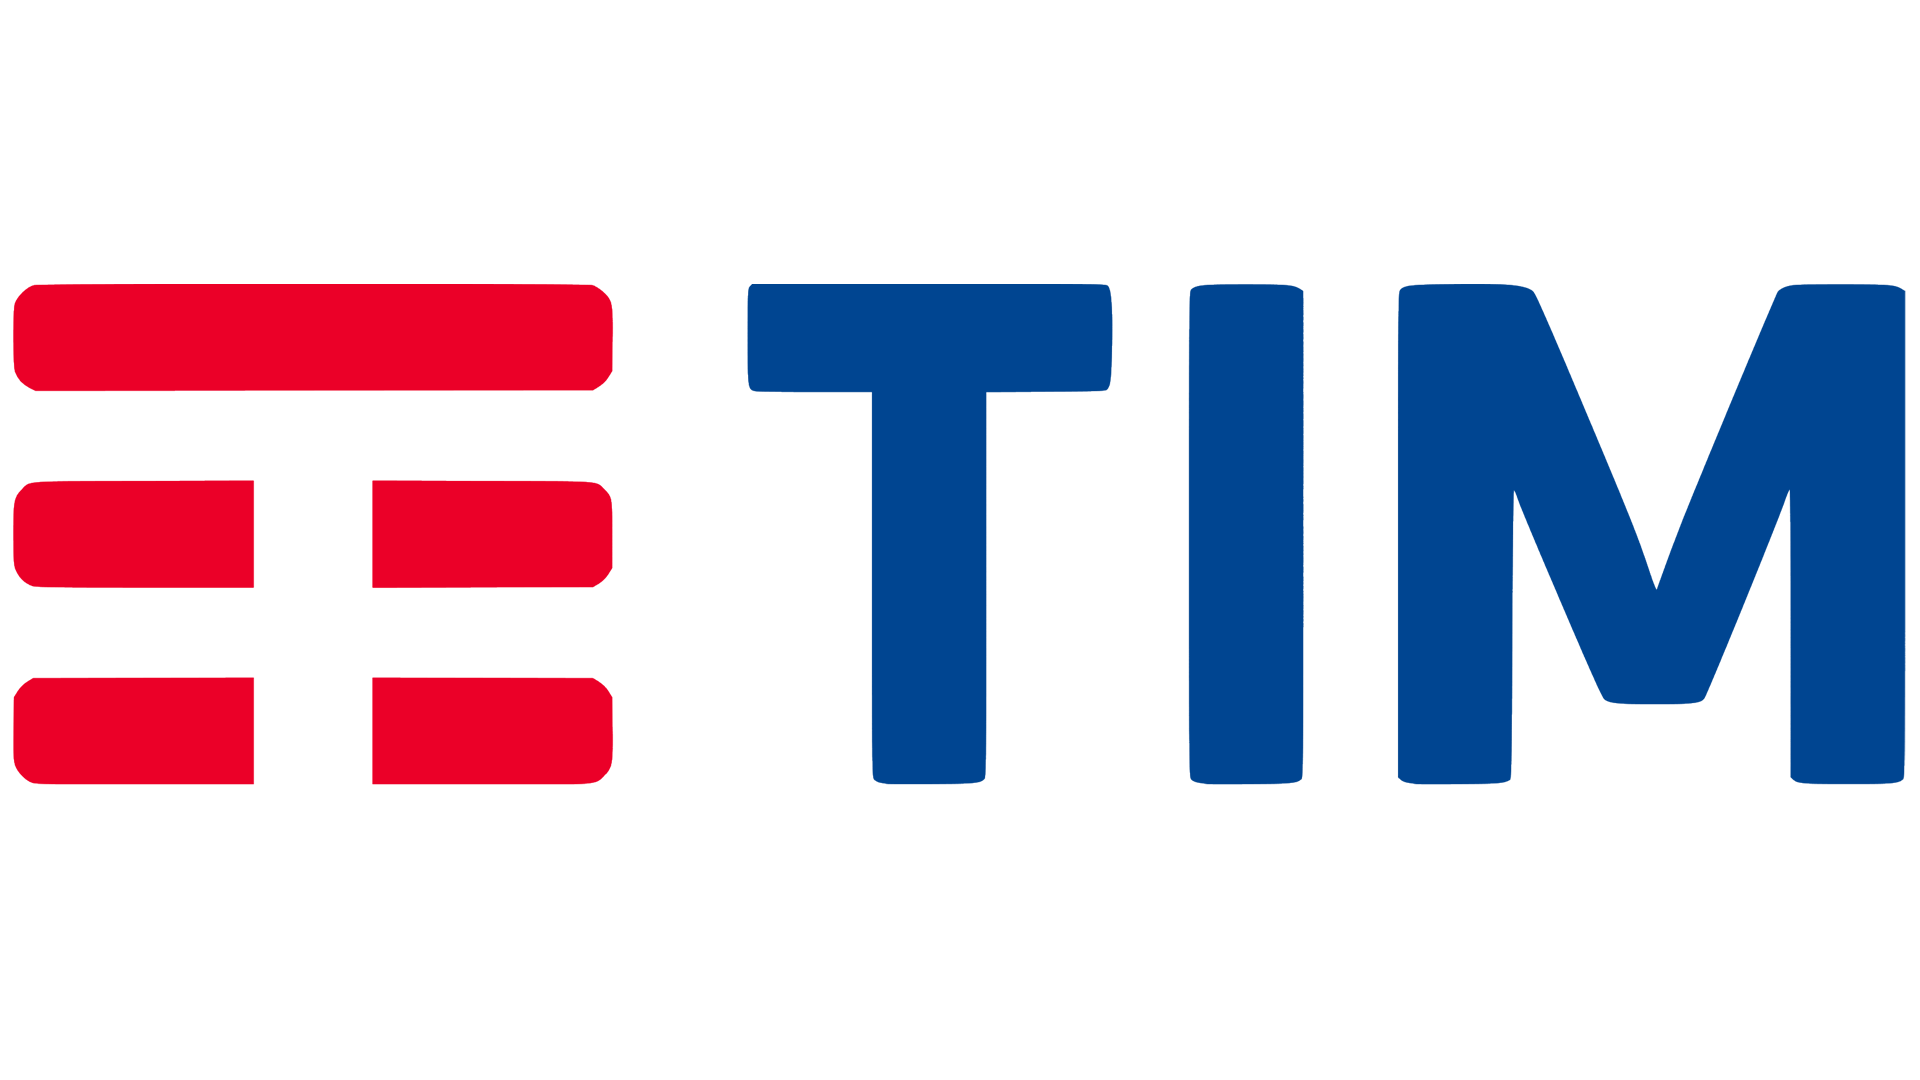 Tim logo and symbol, meaning, history, PNG